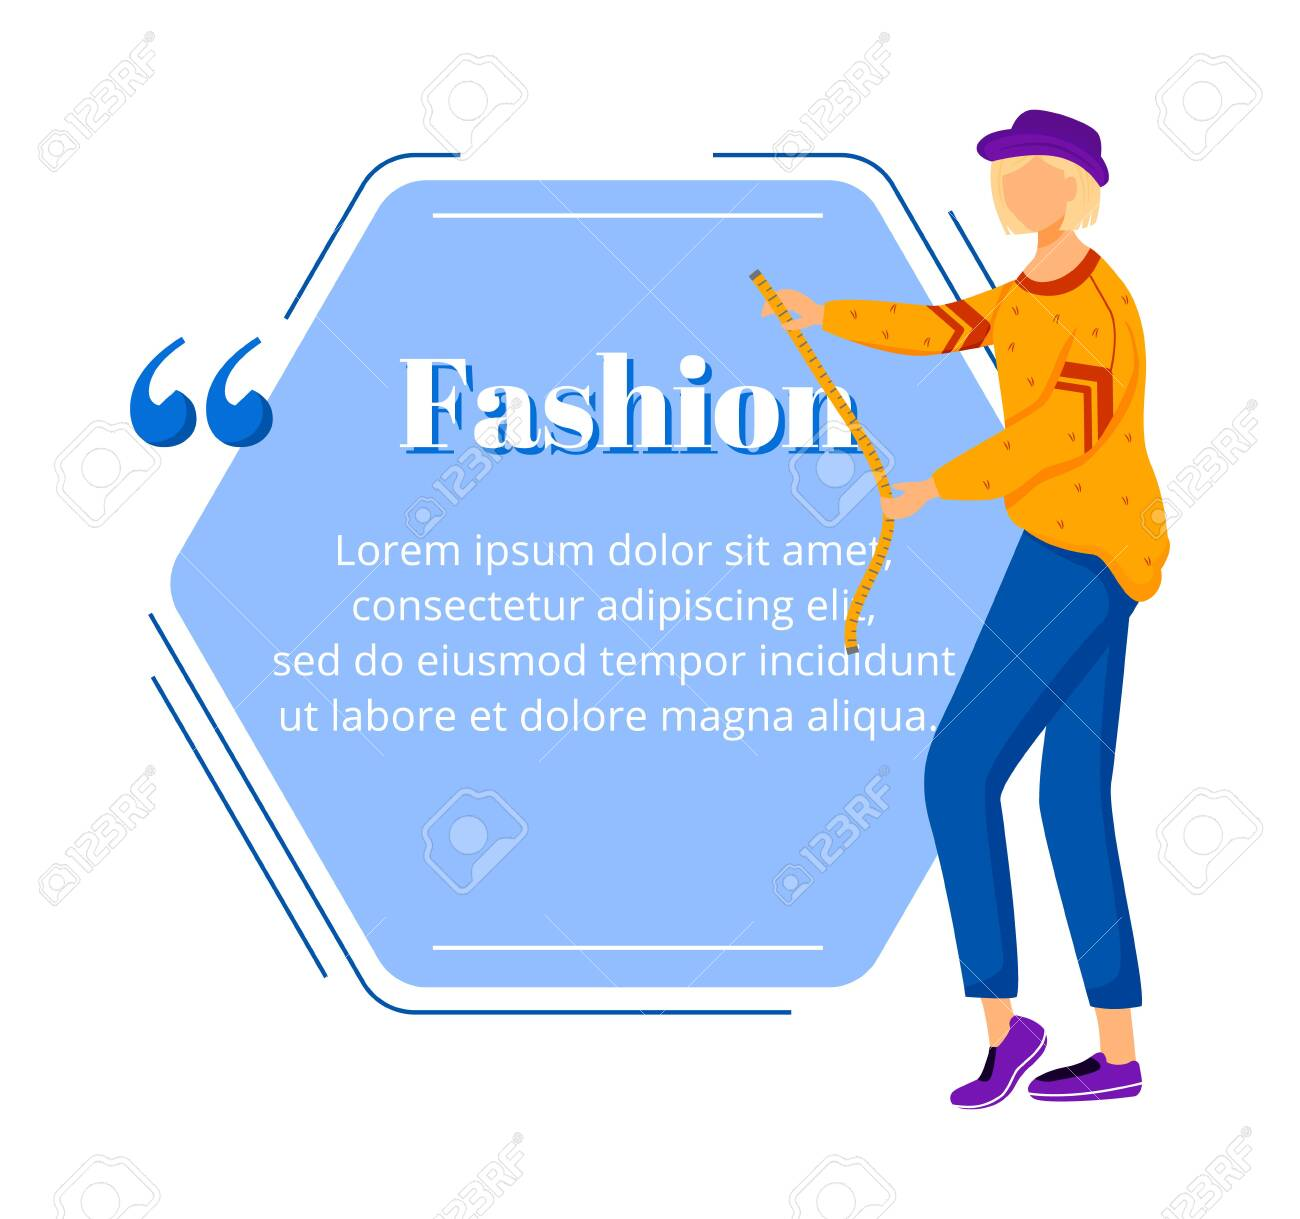 Fashion Designer Flat Color Vector Character Quote Individual Royalty Free Cliparts Vectors And Stock Illustration Image 138655549